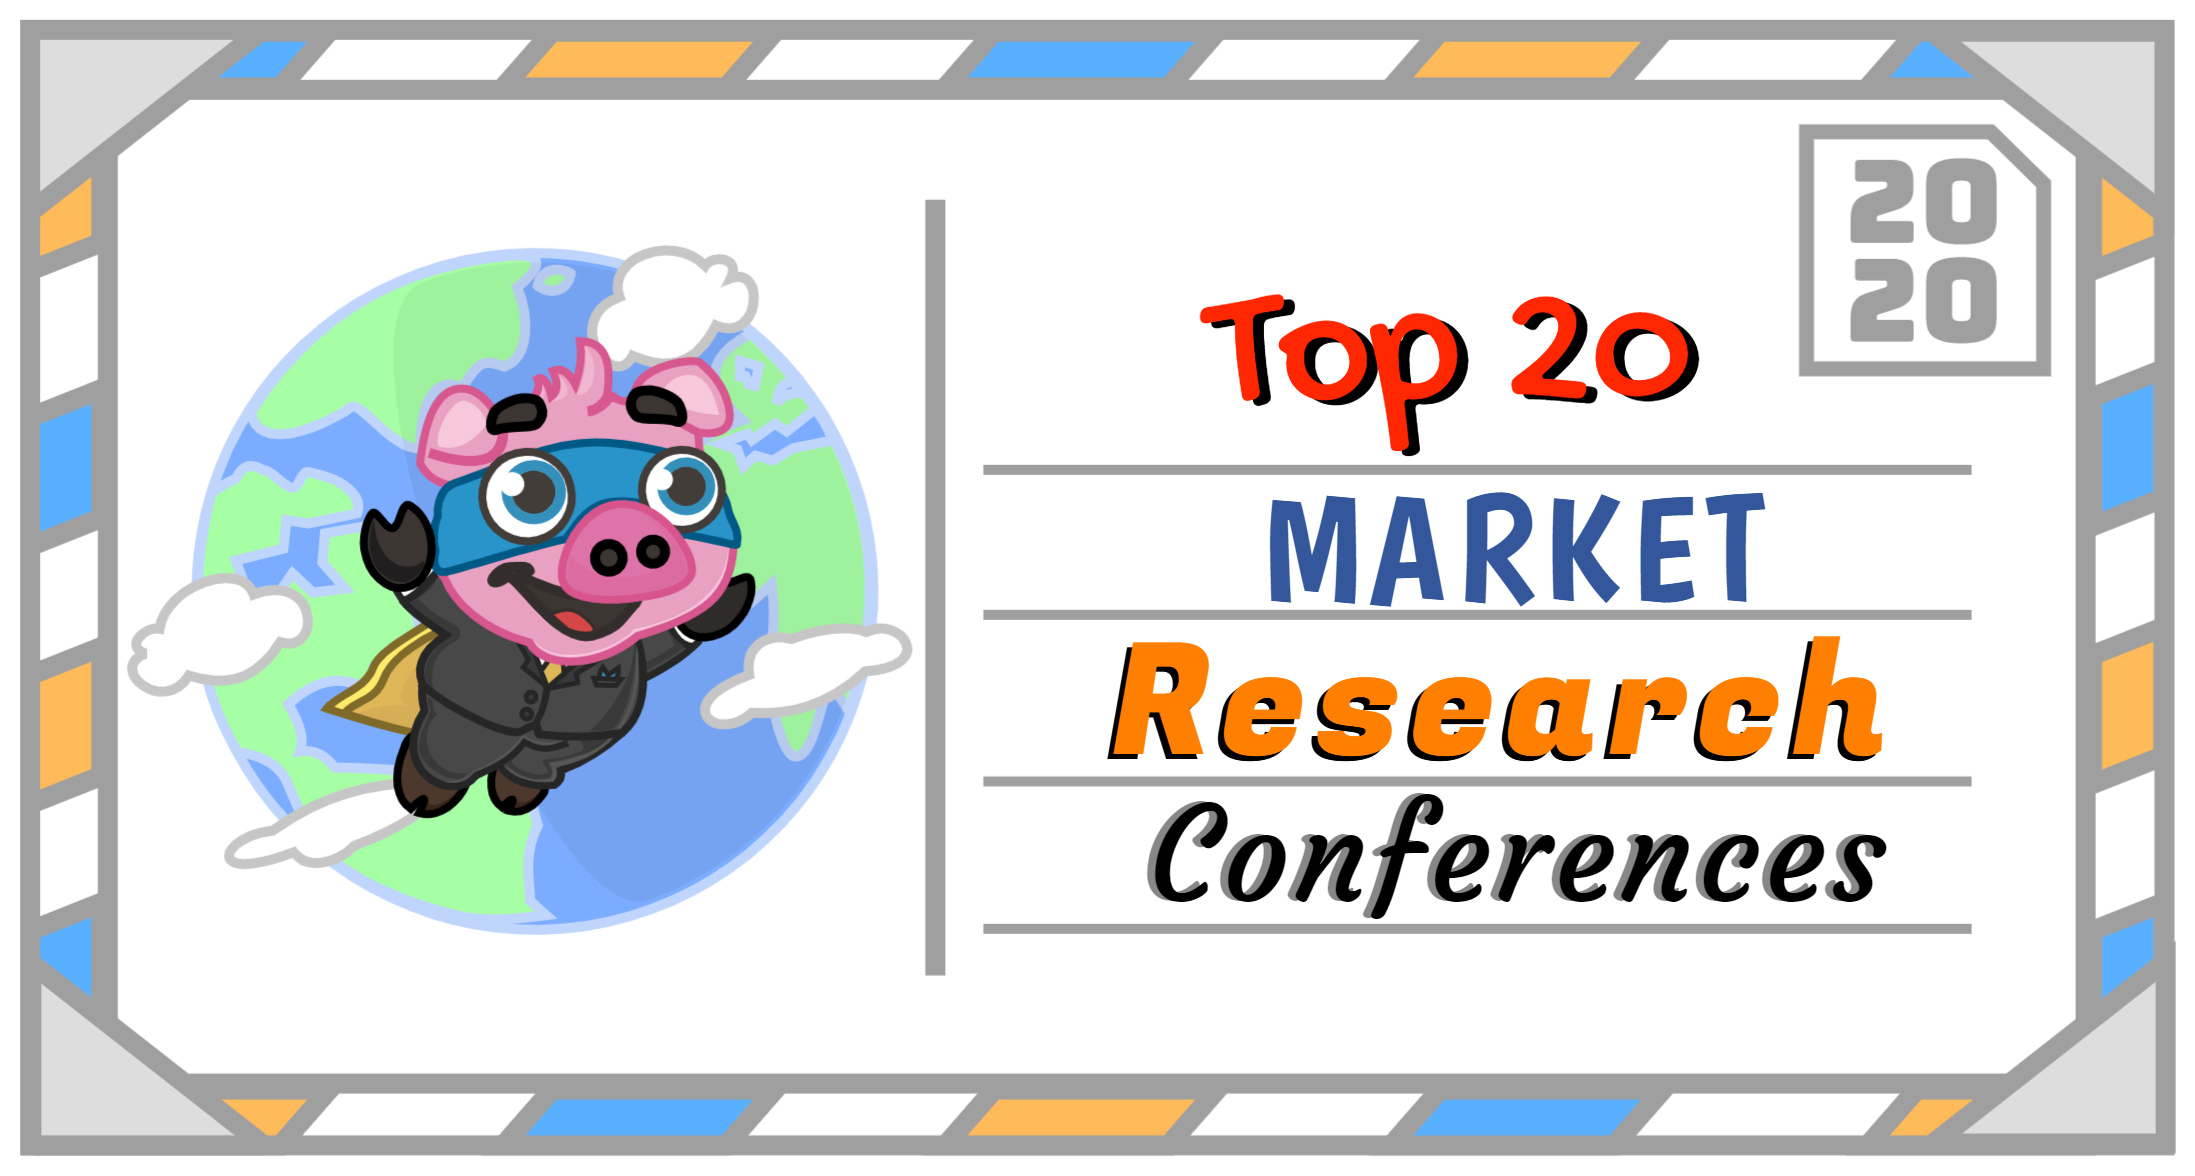 The Top 20 Market Research Conferences to Attend in 2020